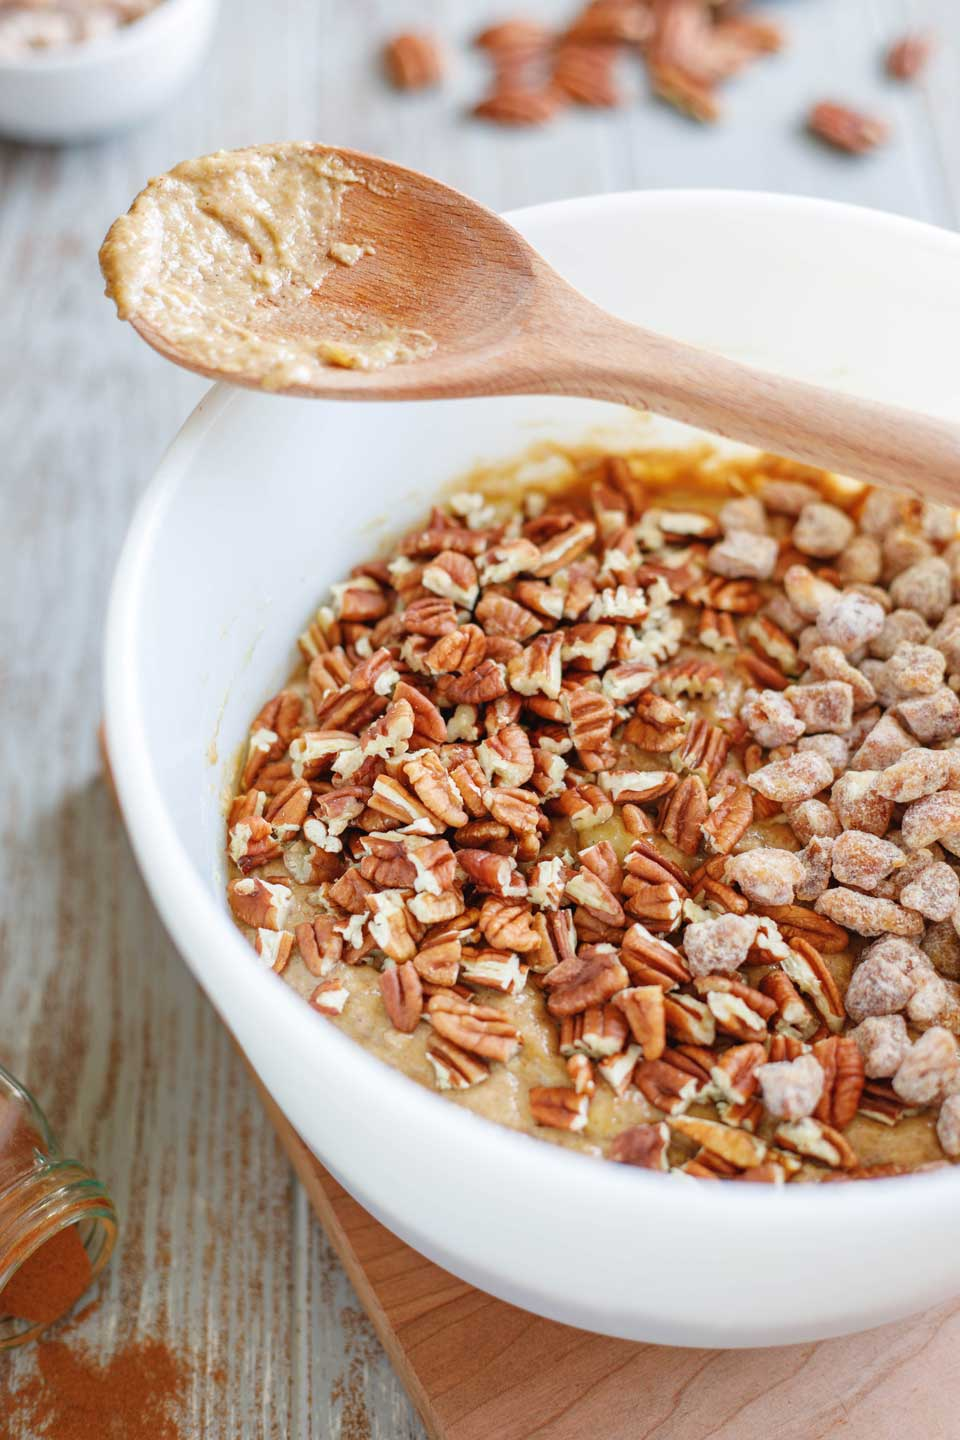 Mixing bowl full of banana bread batter with dates and pecans sprinkled on top, ready to be mixed in with a wooden spoon